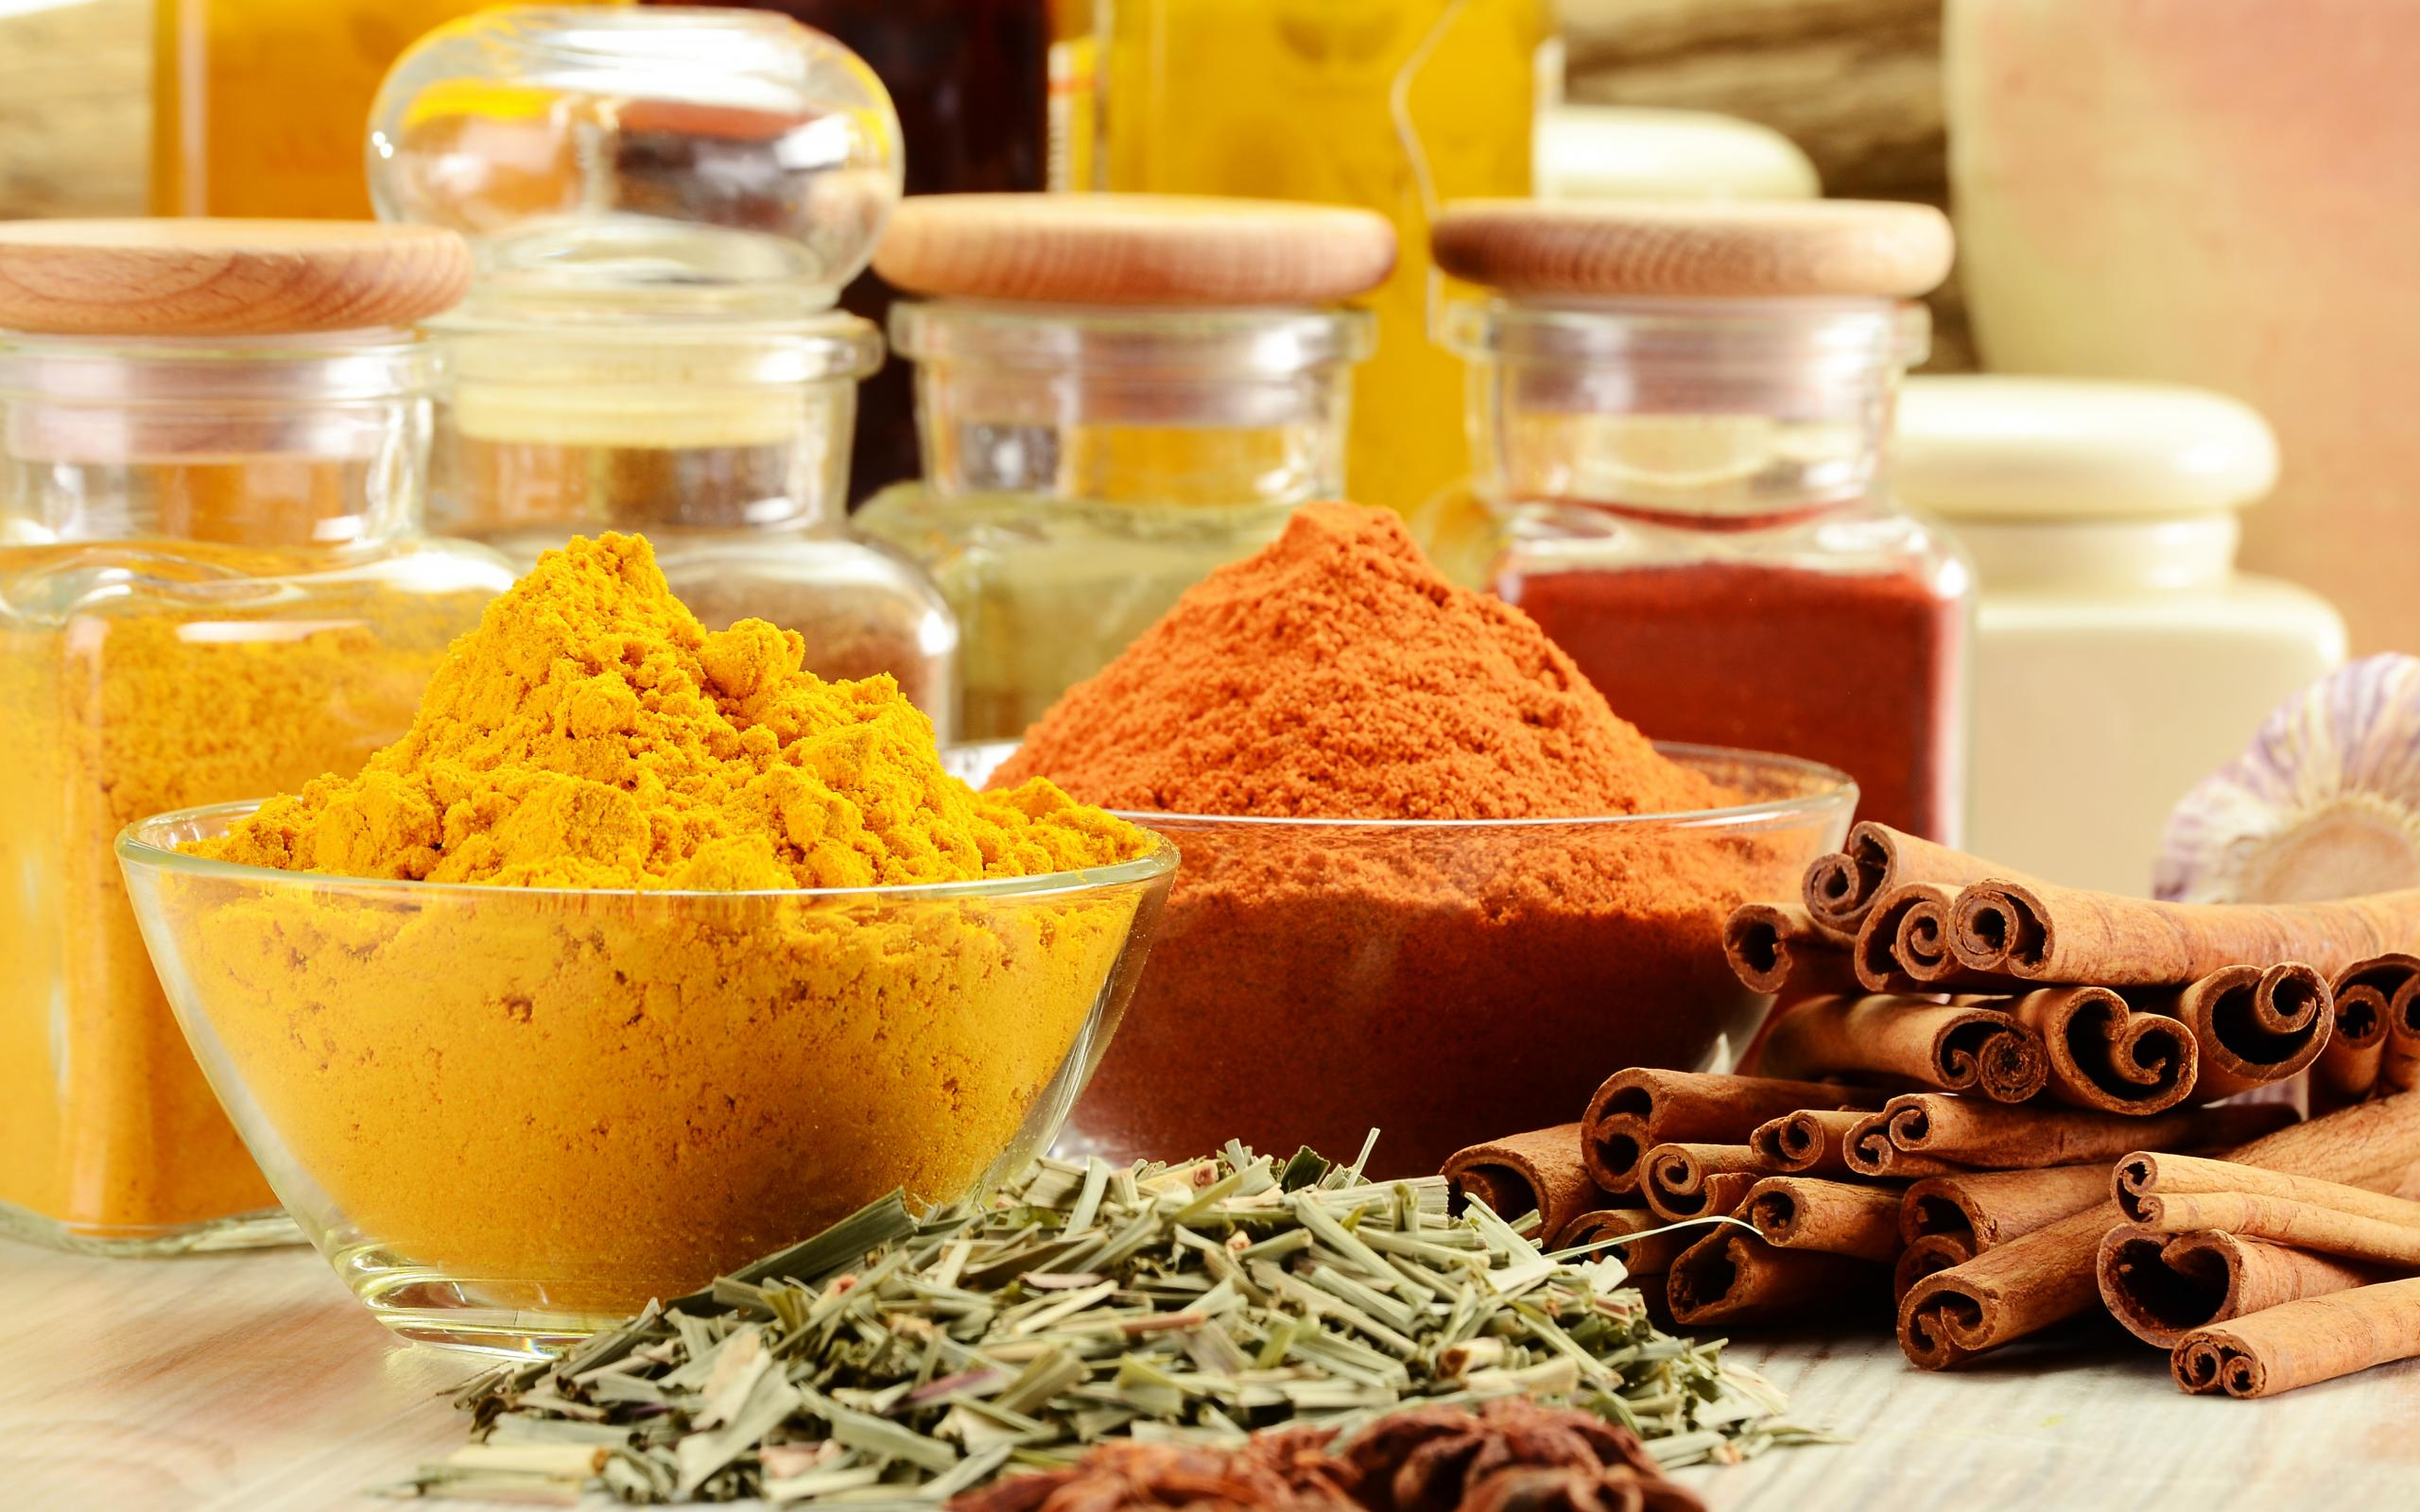 Awesome Spices Wallpaper